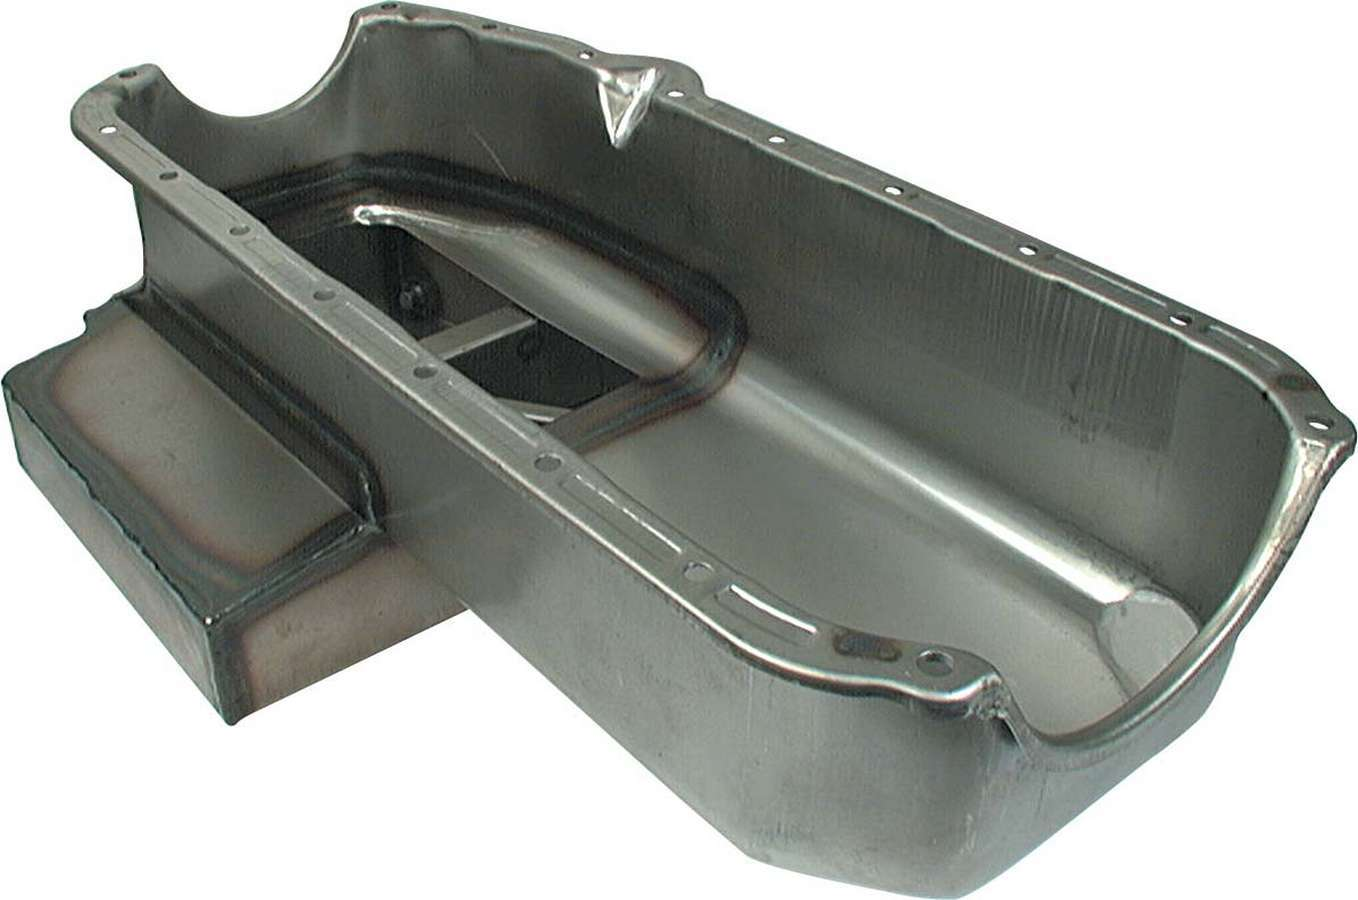 Allstar Performance 26132 Engine Oil Pan, Claimer Pan, Rear Sump, 6 qt, 7 in Deep, Kick Out, Steel, Natural, Small Block Chevy, Each